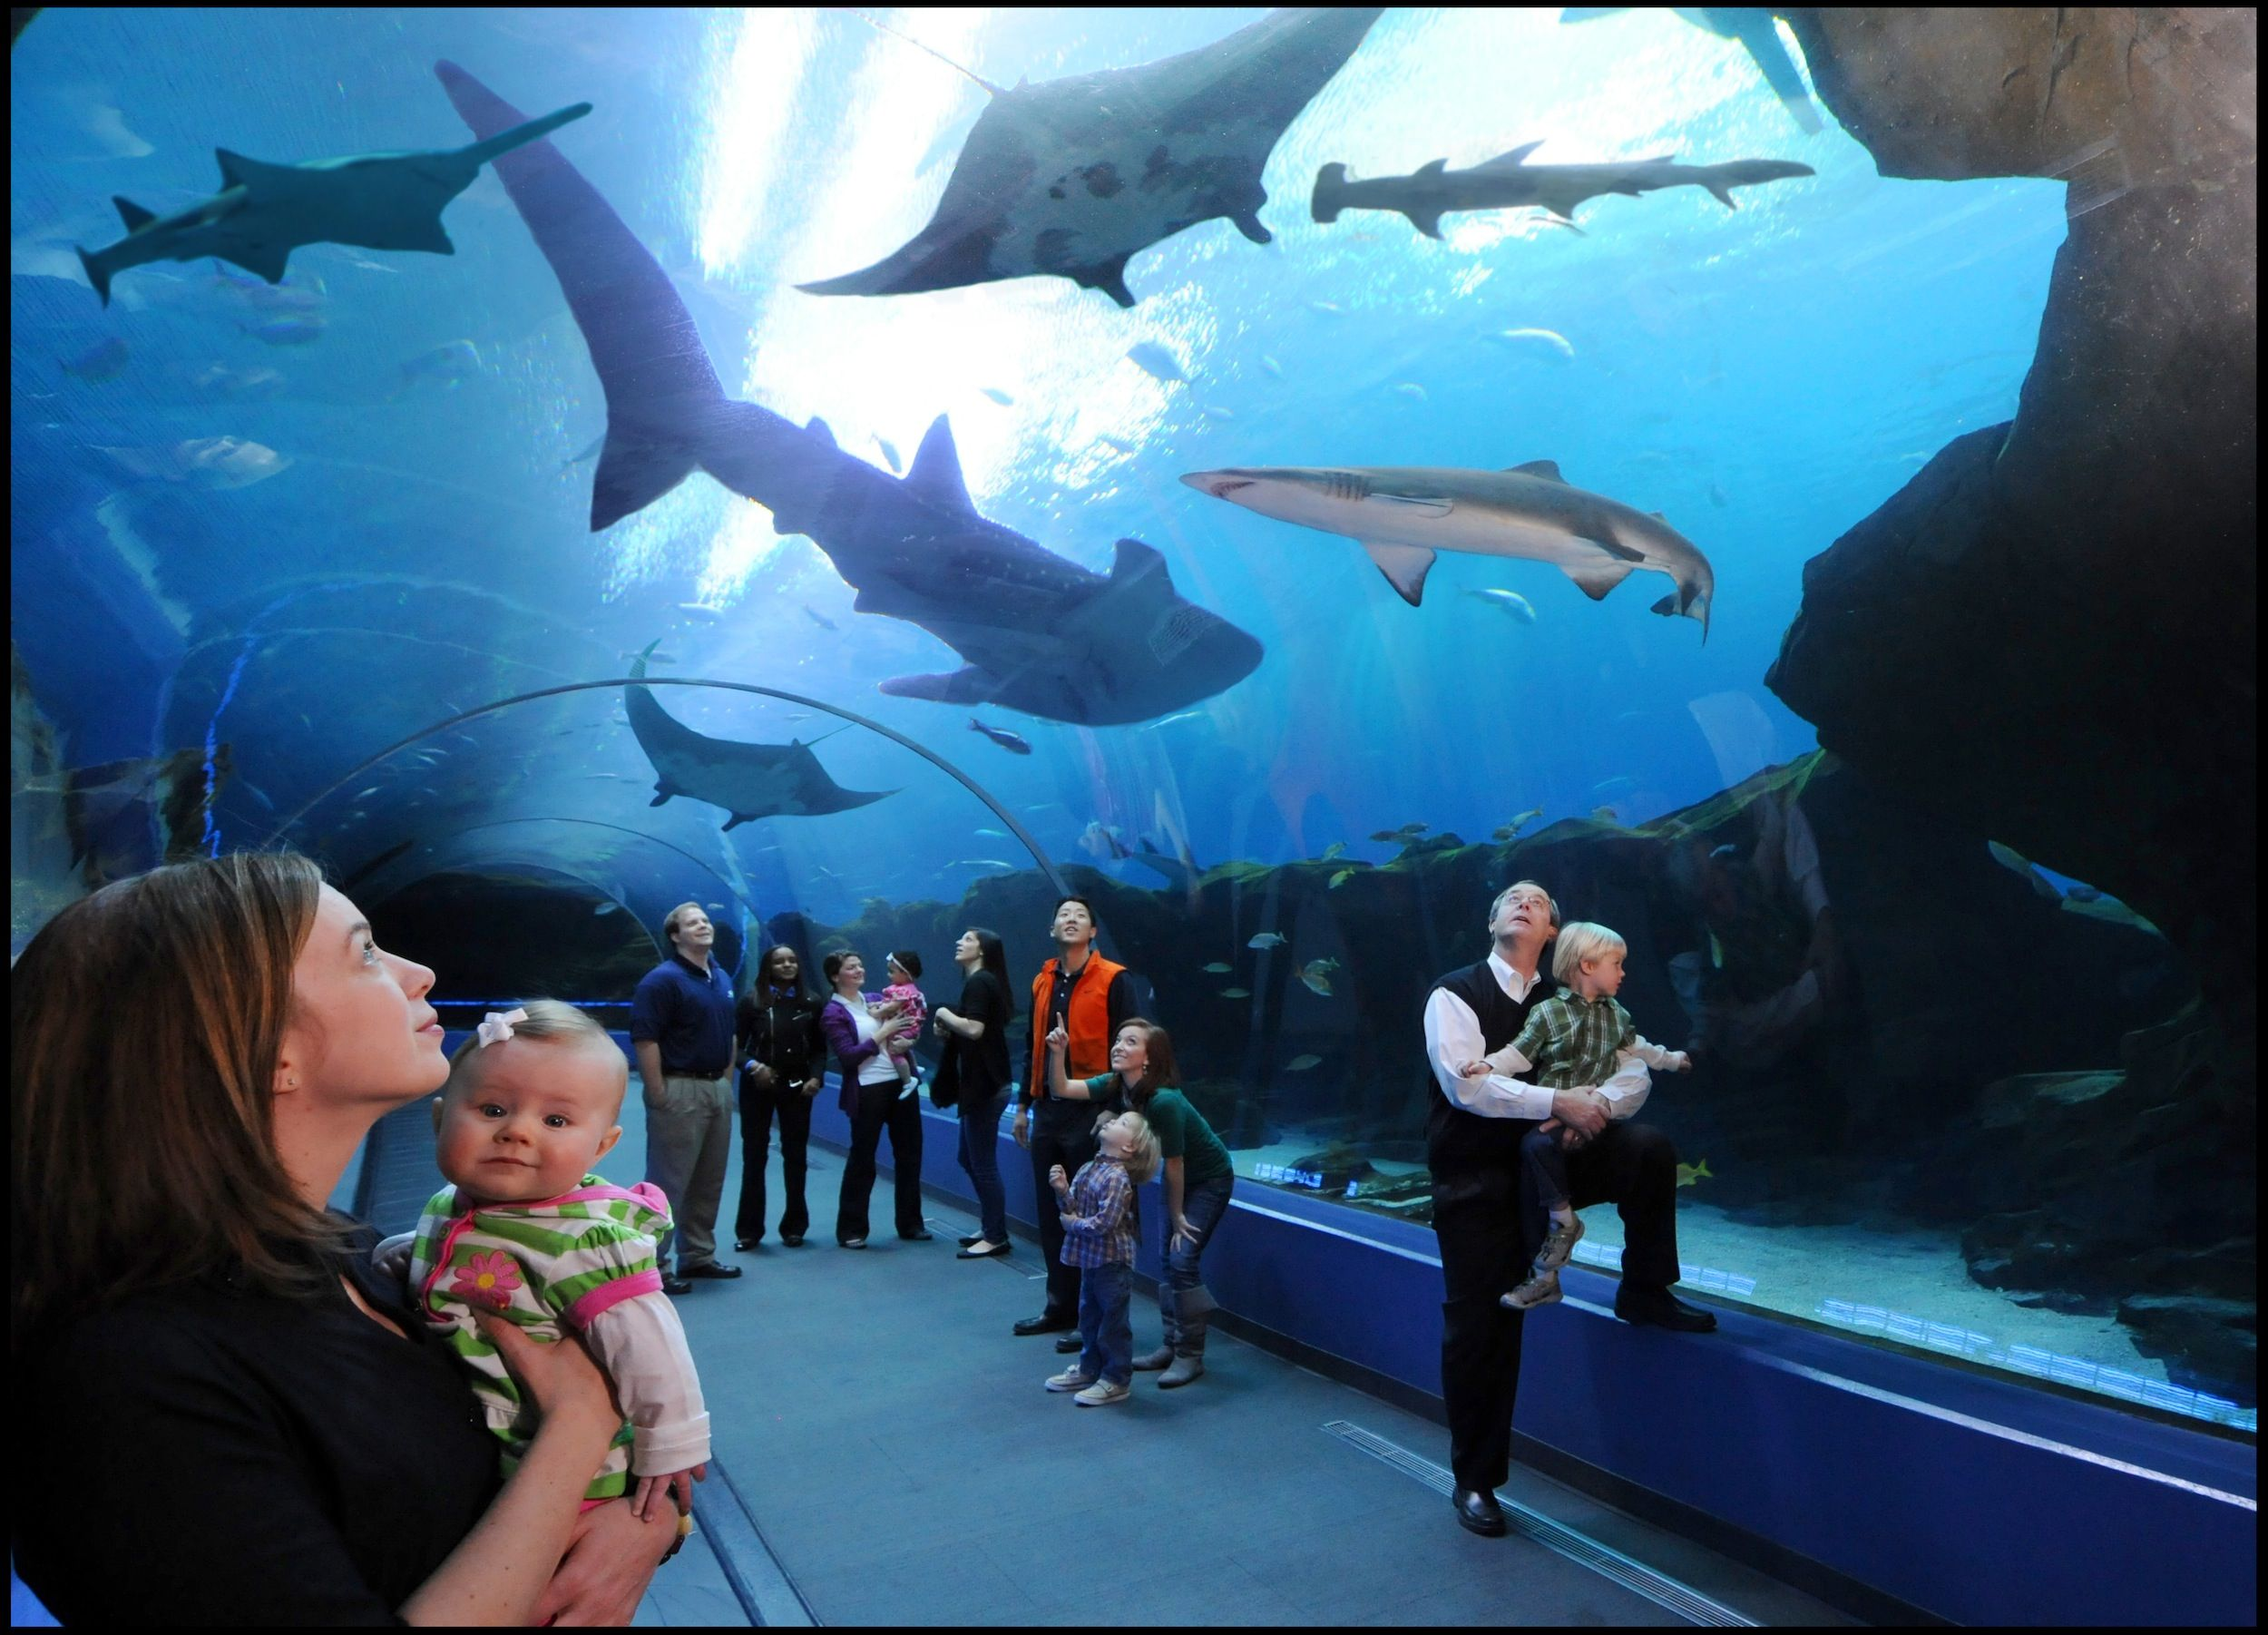 Fish aquarium in georgia - Georgia Aquarium Google Search